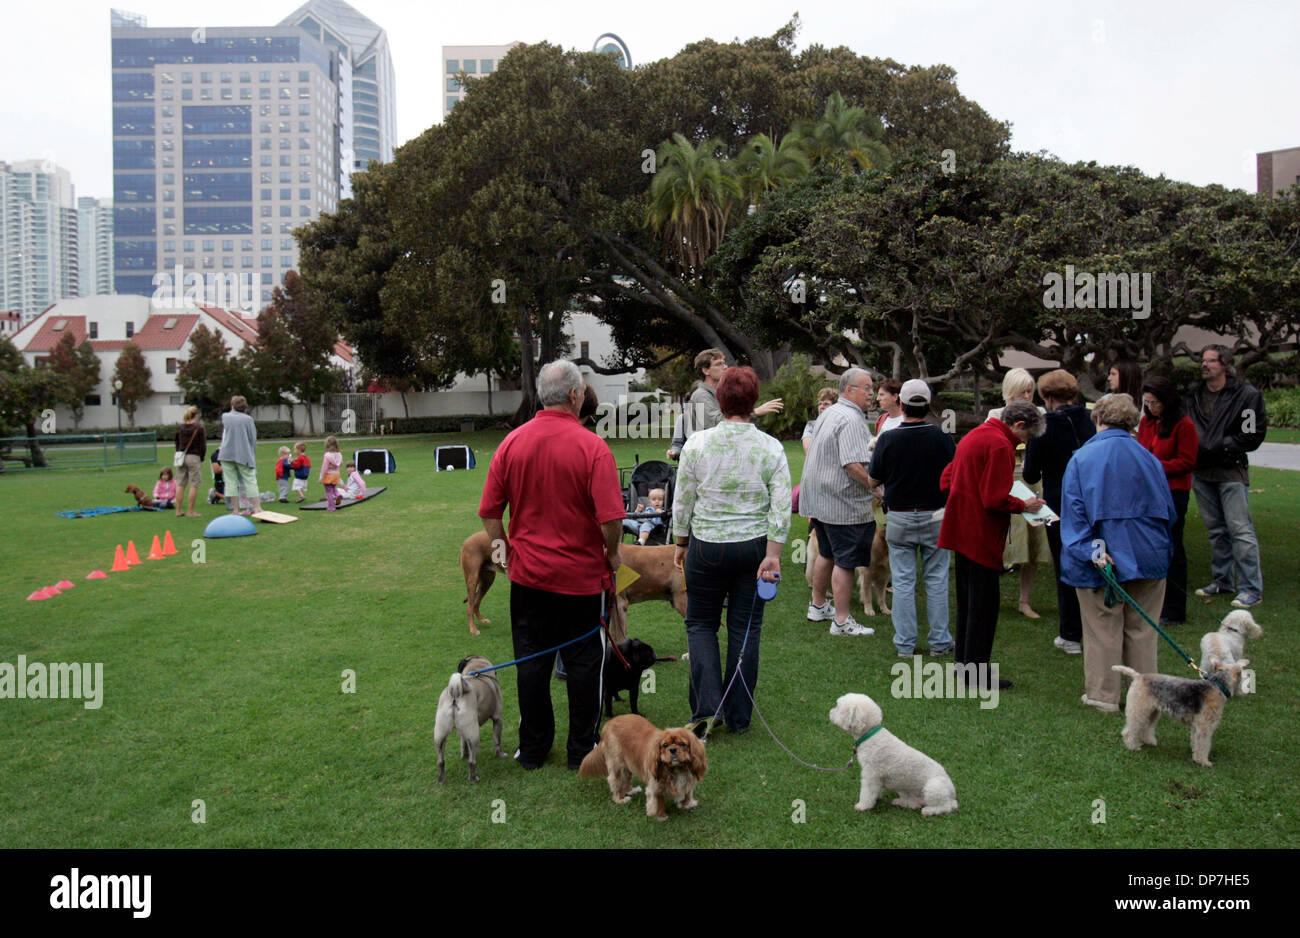 Nov 09, 2006; San Diego, CA, USA; Pet owners gather around children's parent's who use the park, as  board certified personal trainer Sean Mageau leads some downtown area children who meet for a play date in Pantajo Park (on G Street, near India St.) in exercises. The parent's are trying to get play equipment for the park, and might want the pet owners use of the park curbed in fav - Stock Image